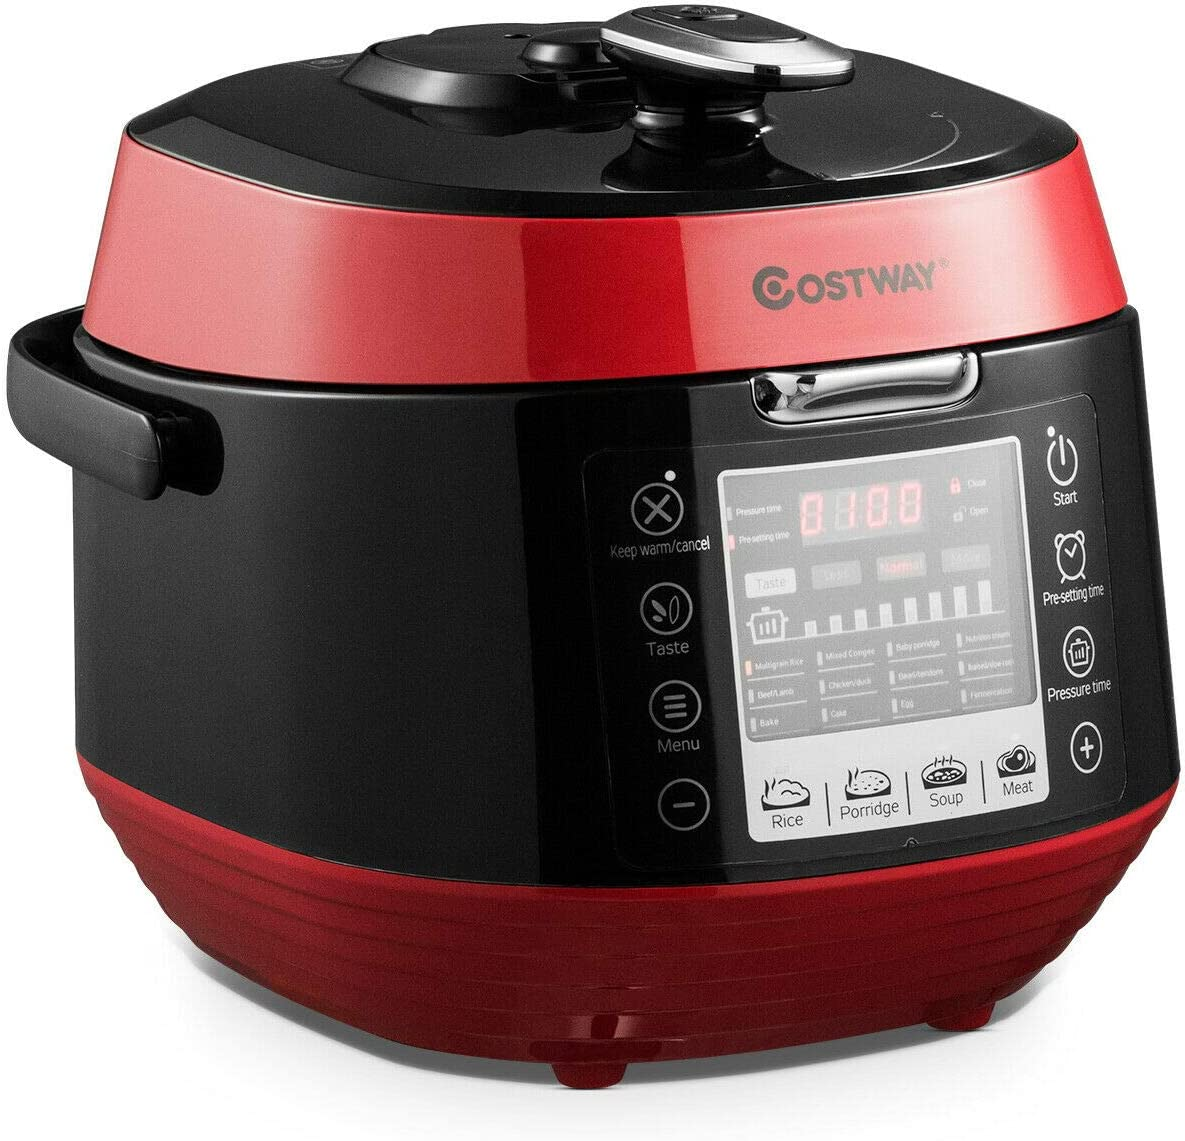 Multi-Cooker 5.3 Quart 12 in 1 Programmable Multi-use Slow Electric Pressure Cooker Home Pot LED Display Cook, Fast Stew, Stir-Fry, Boil, Sous, Grill, Fry, Steam